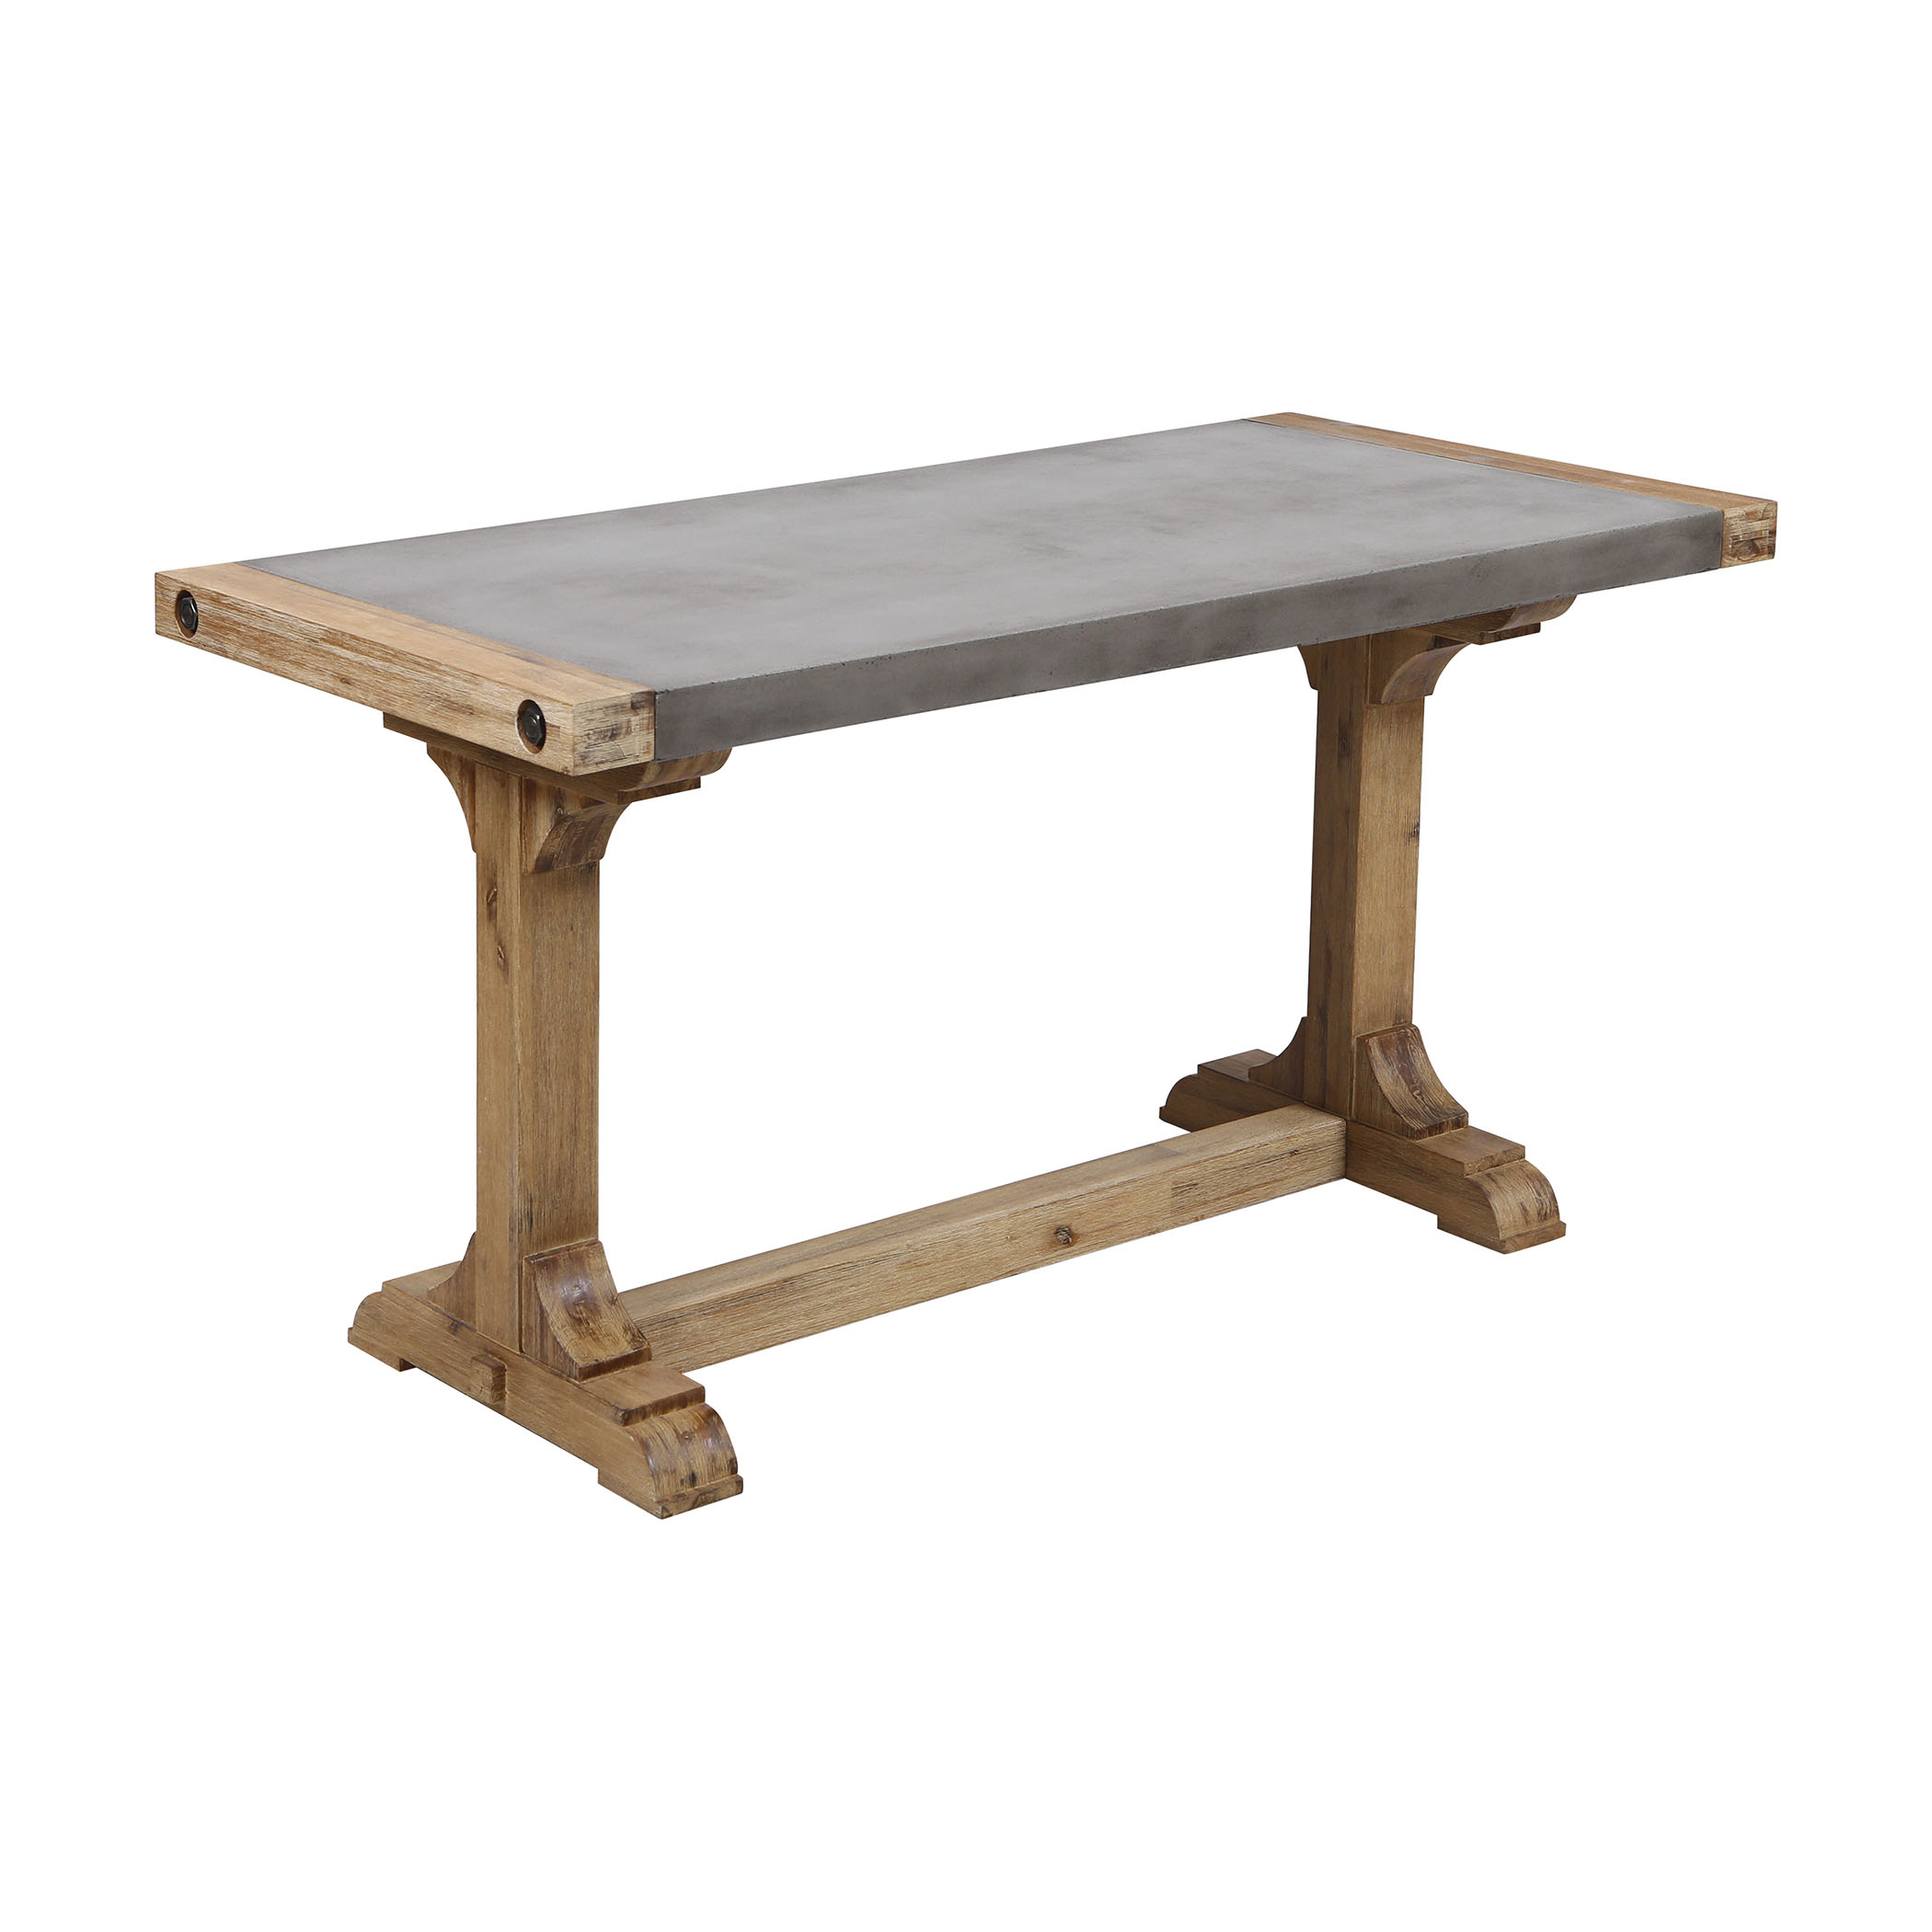 Pirate Console Desk in Concrete and Wood with Waxed Atlantic Finish | Elk Home